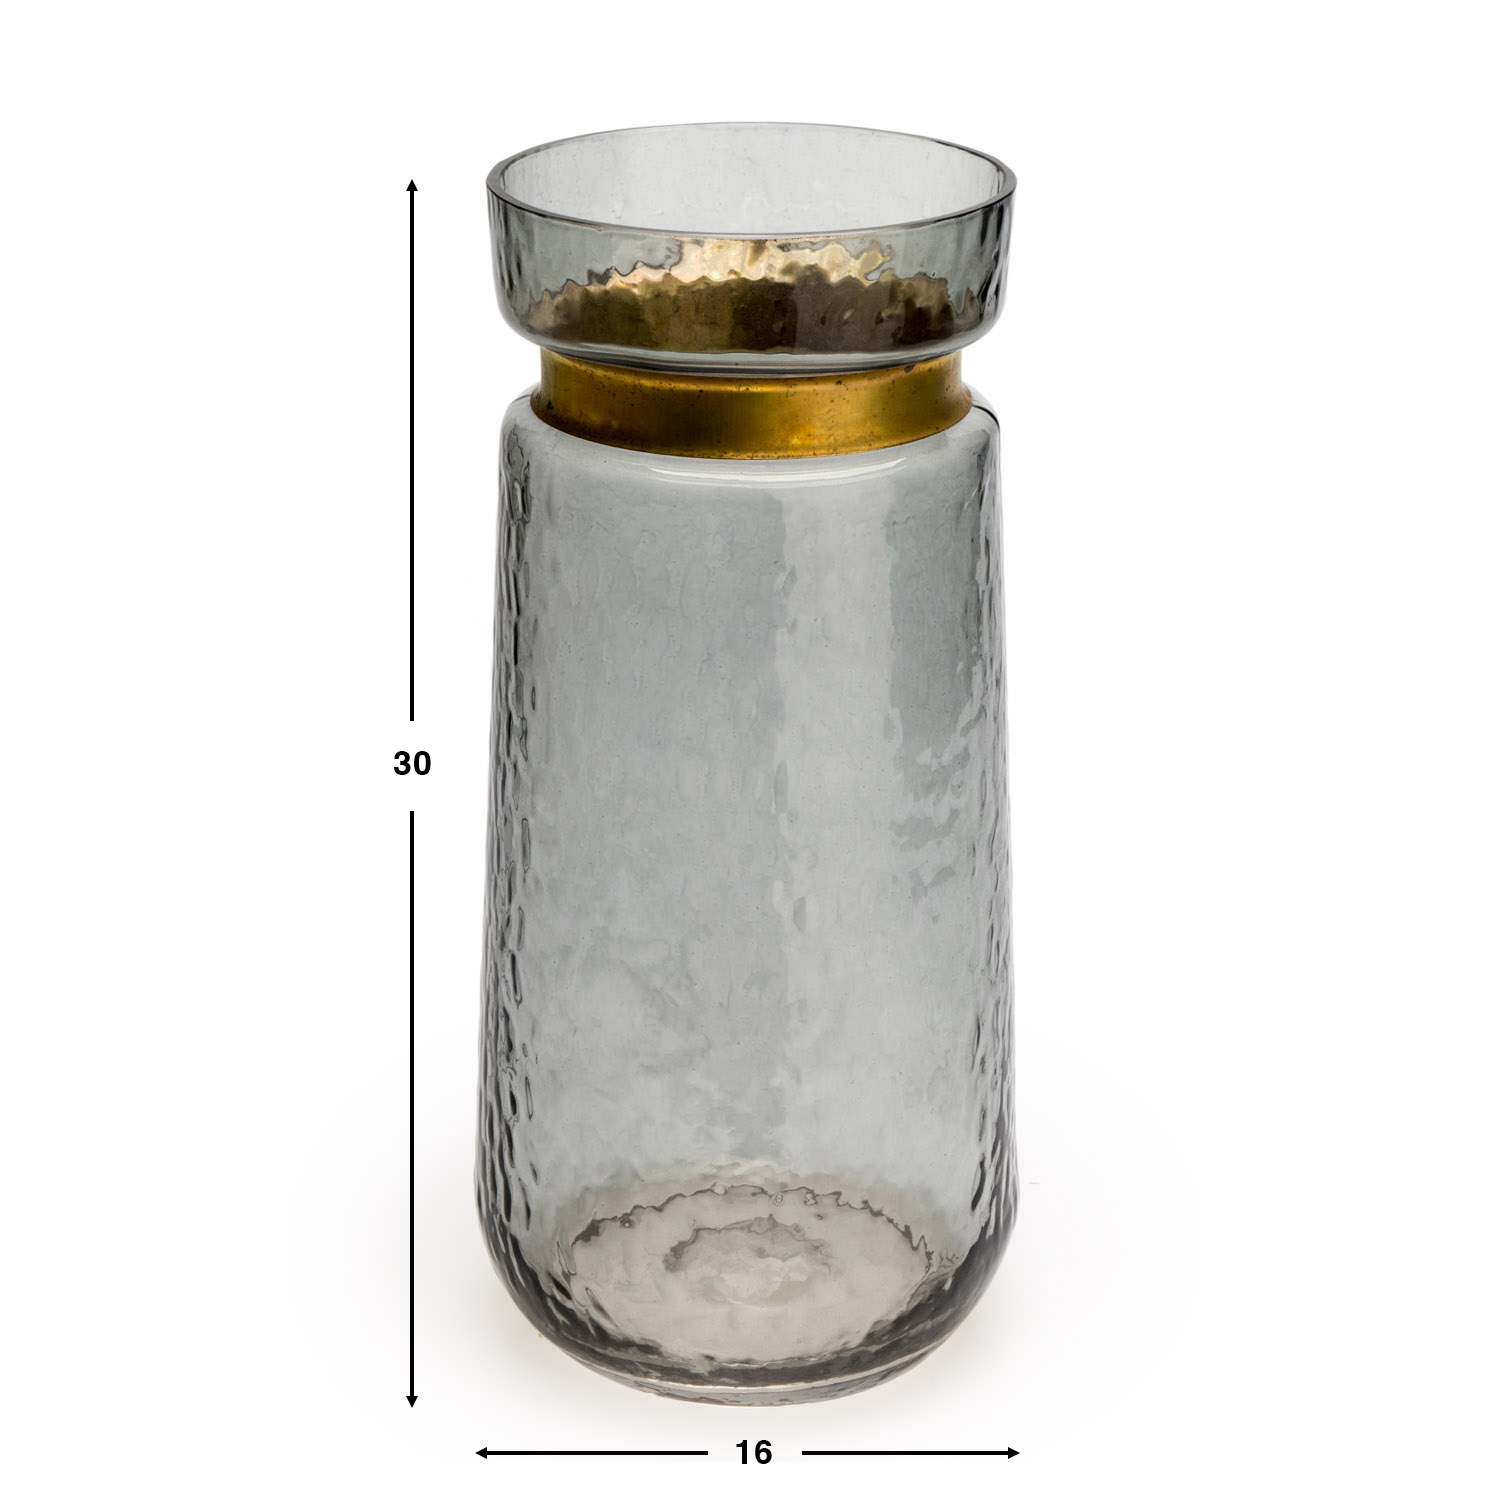 rass Decorative Glass Vase Glass Brown - Modern Vintage Vase for Home Office Room Small Mesa Etching